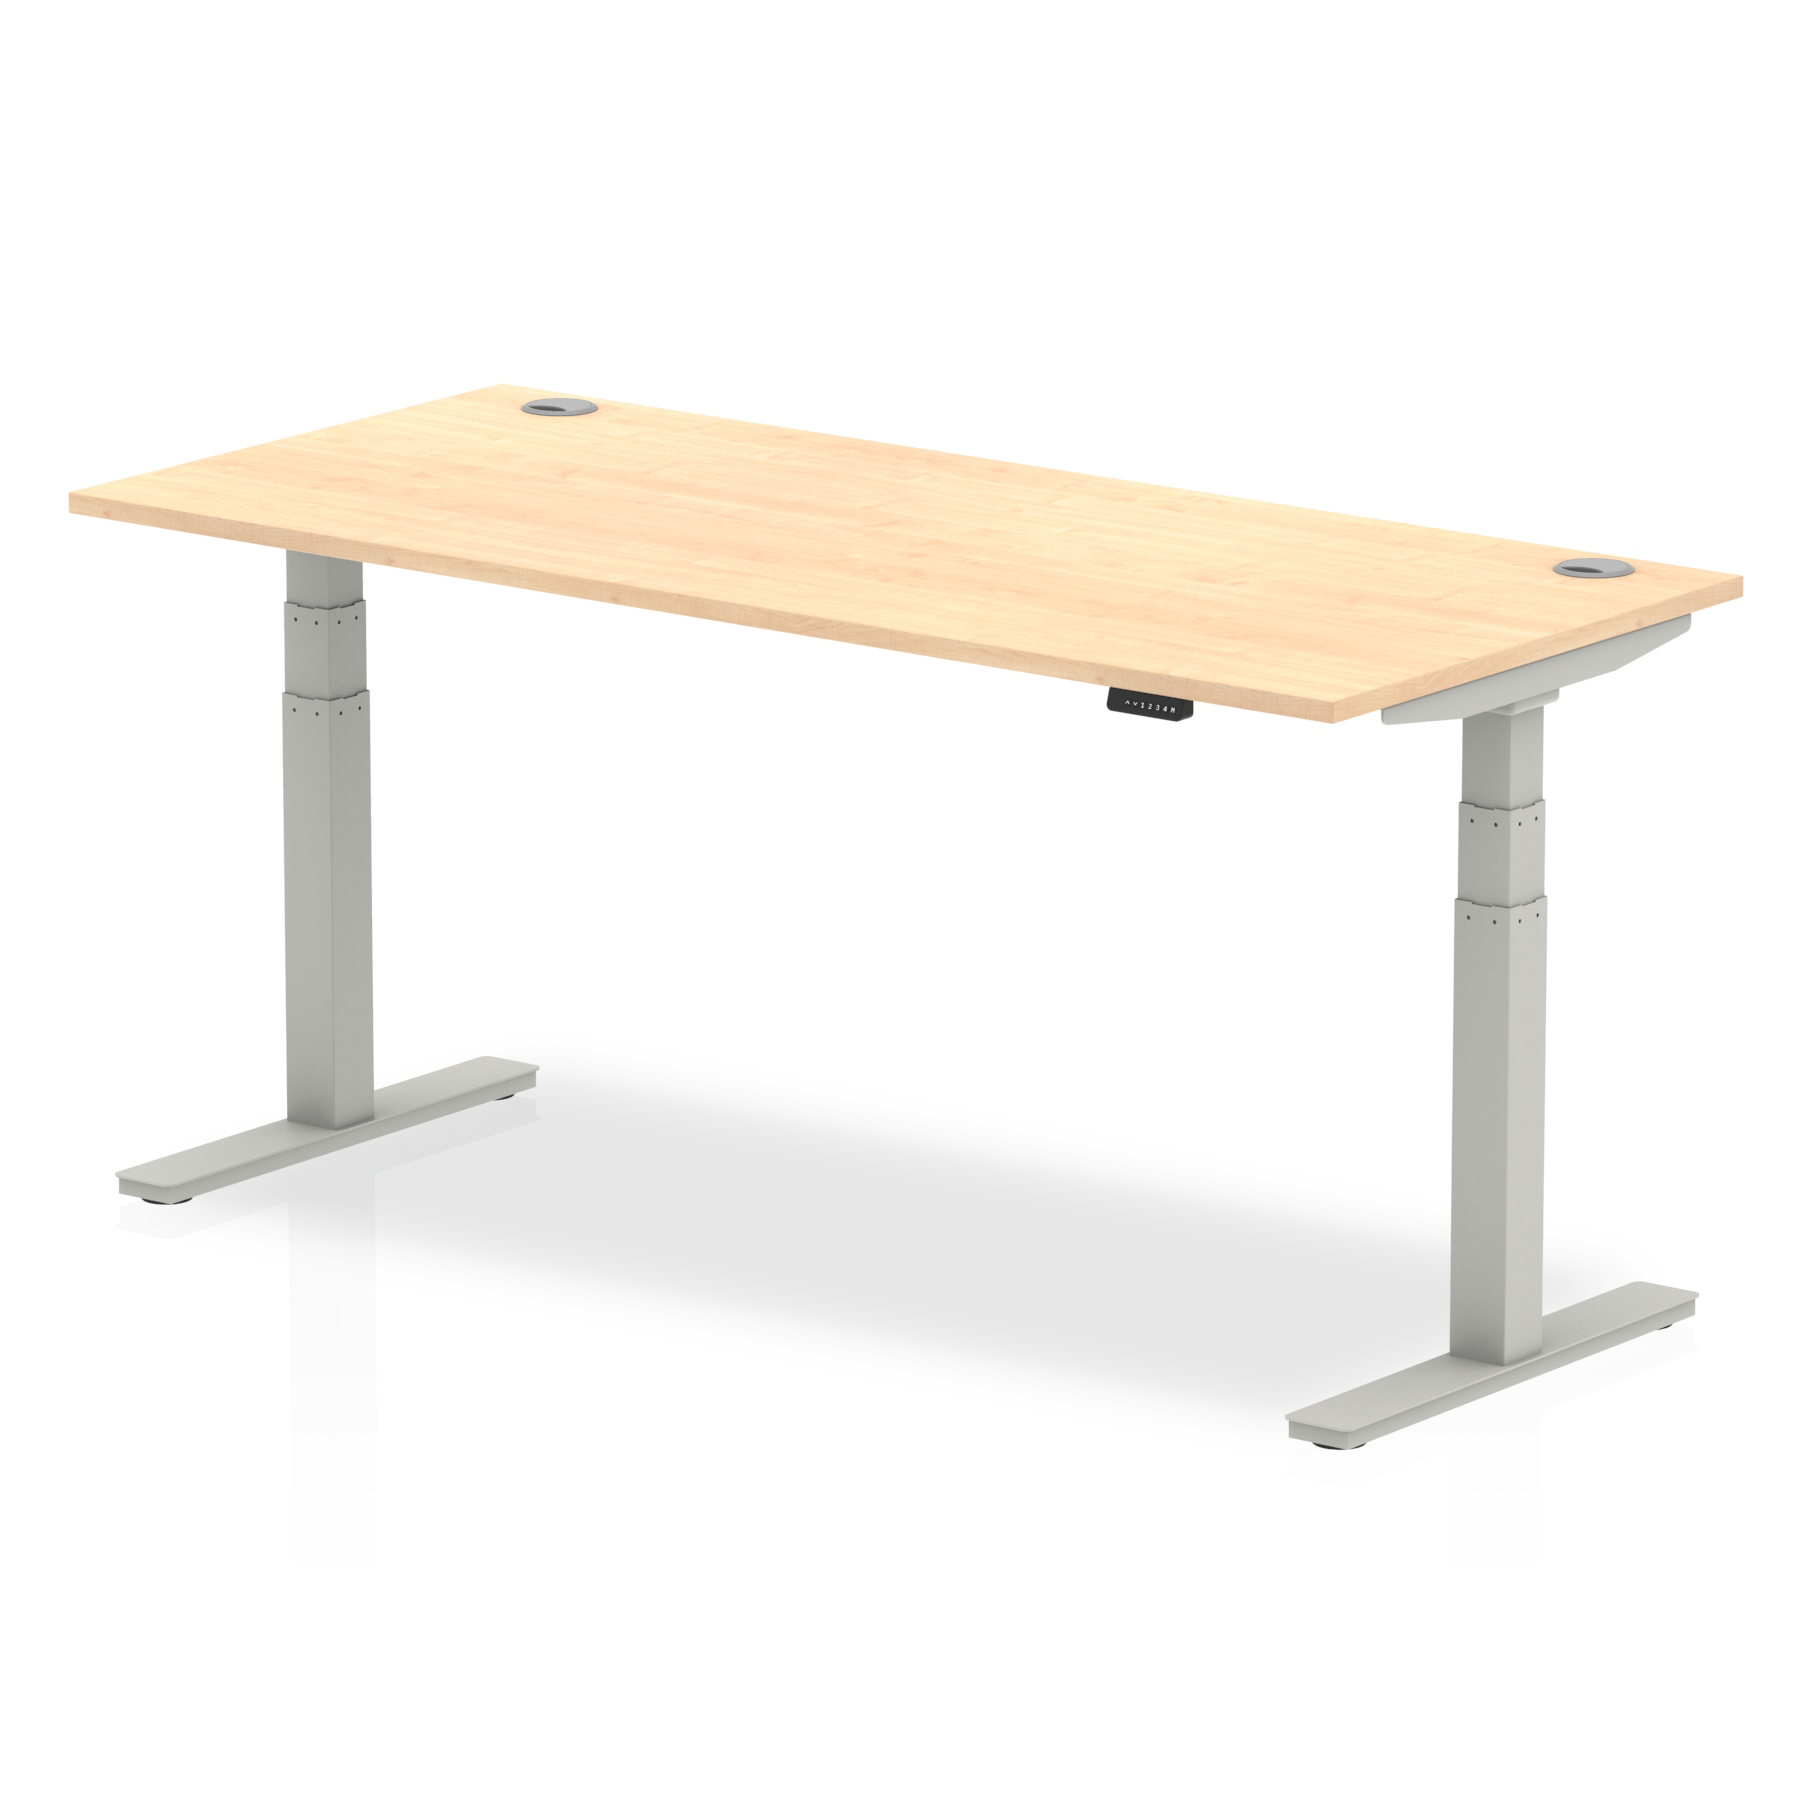 Trexus Sit Stand Desk With Cable Ports Silver Legs 1800x800mm Maple Ref HA01096